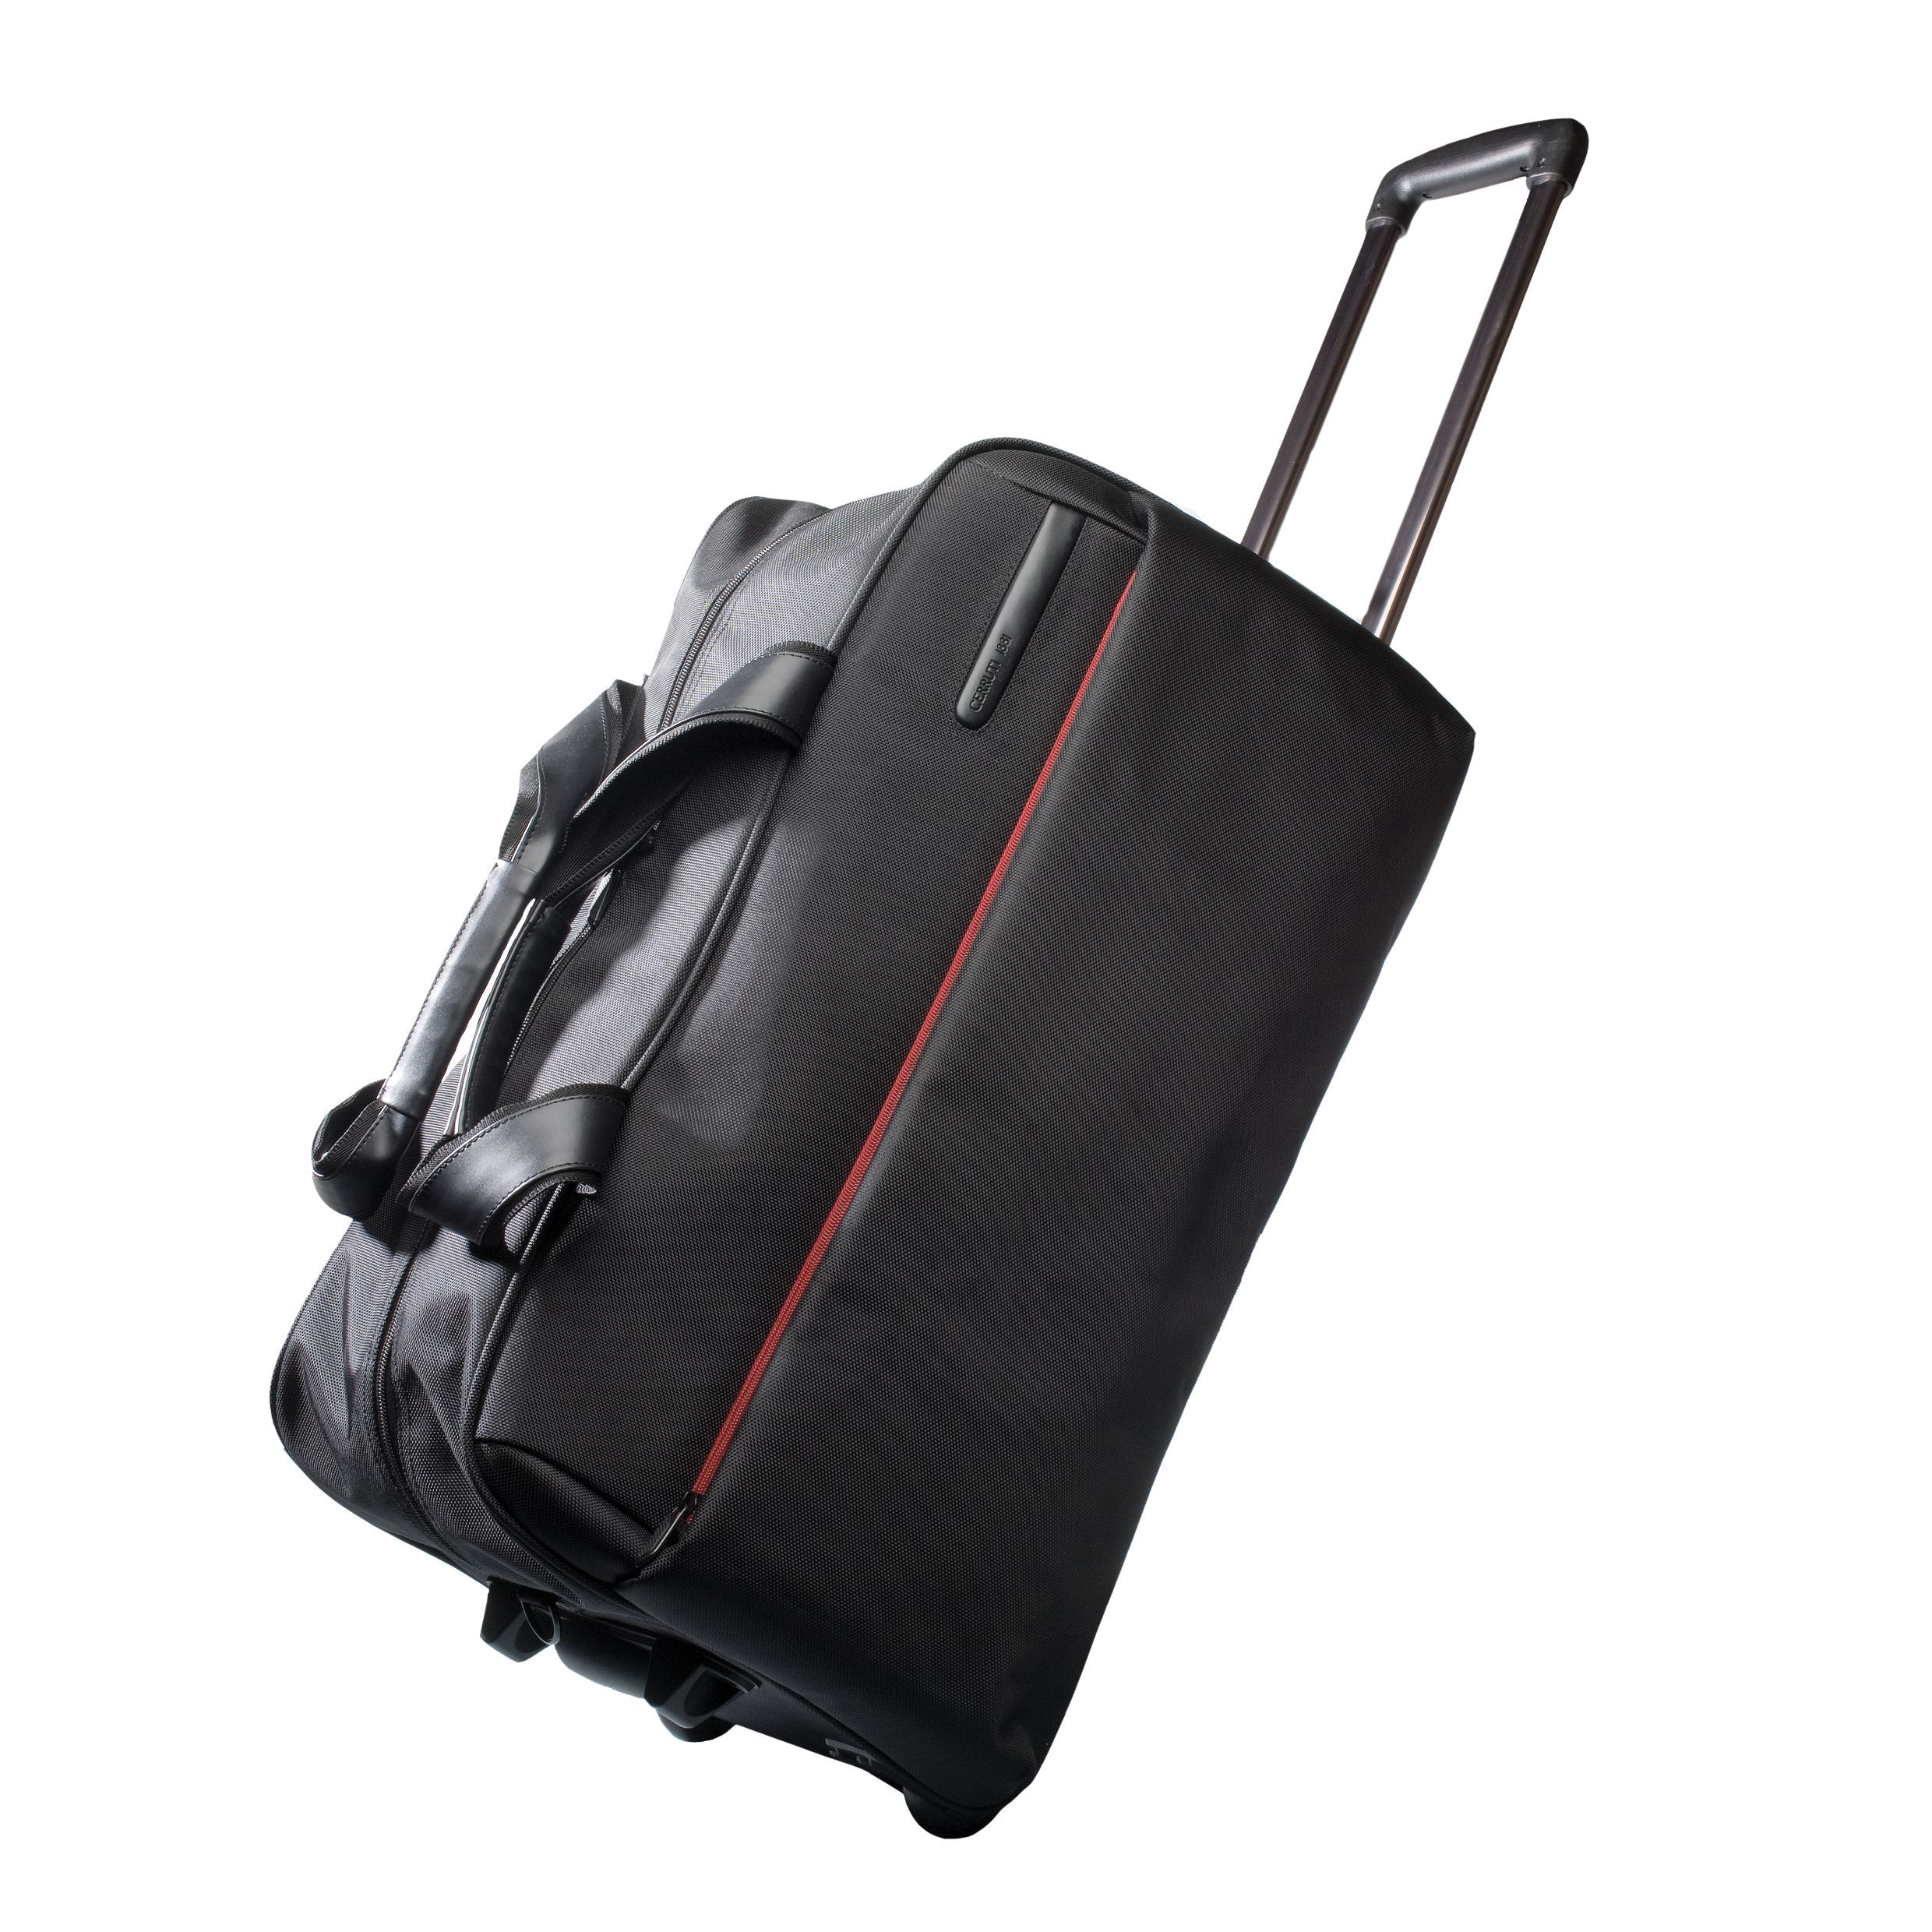 44c5214835 CERRUTI 1881 Trolley Sport Flash 104.33€ Travel Bags, Leather Backpack,  Leather Book Bag